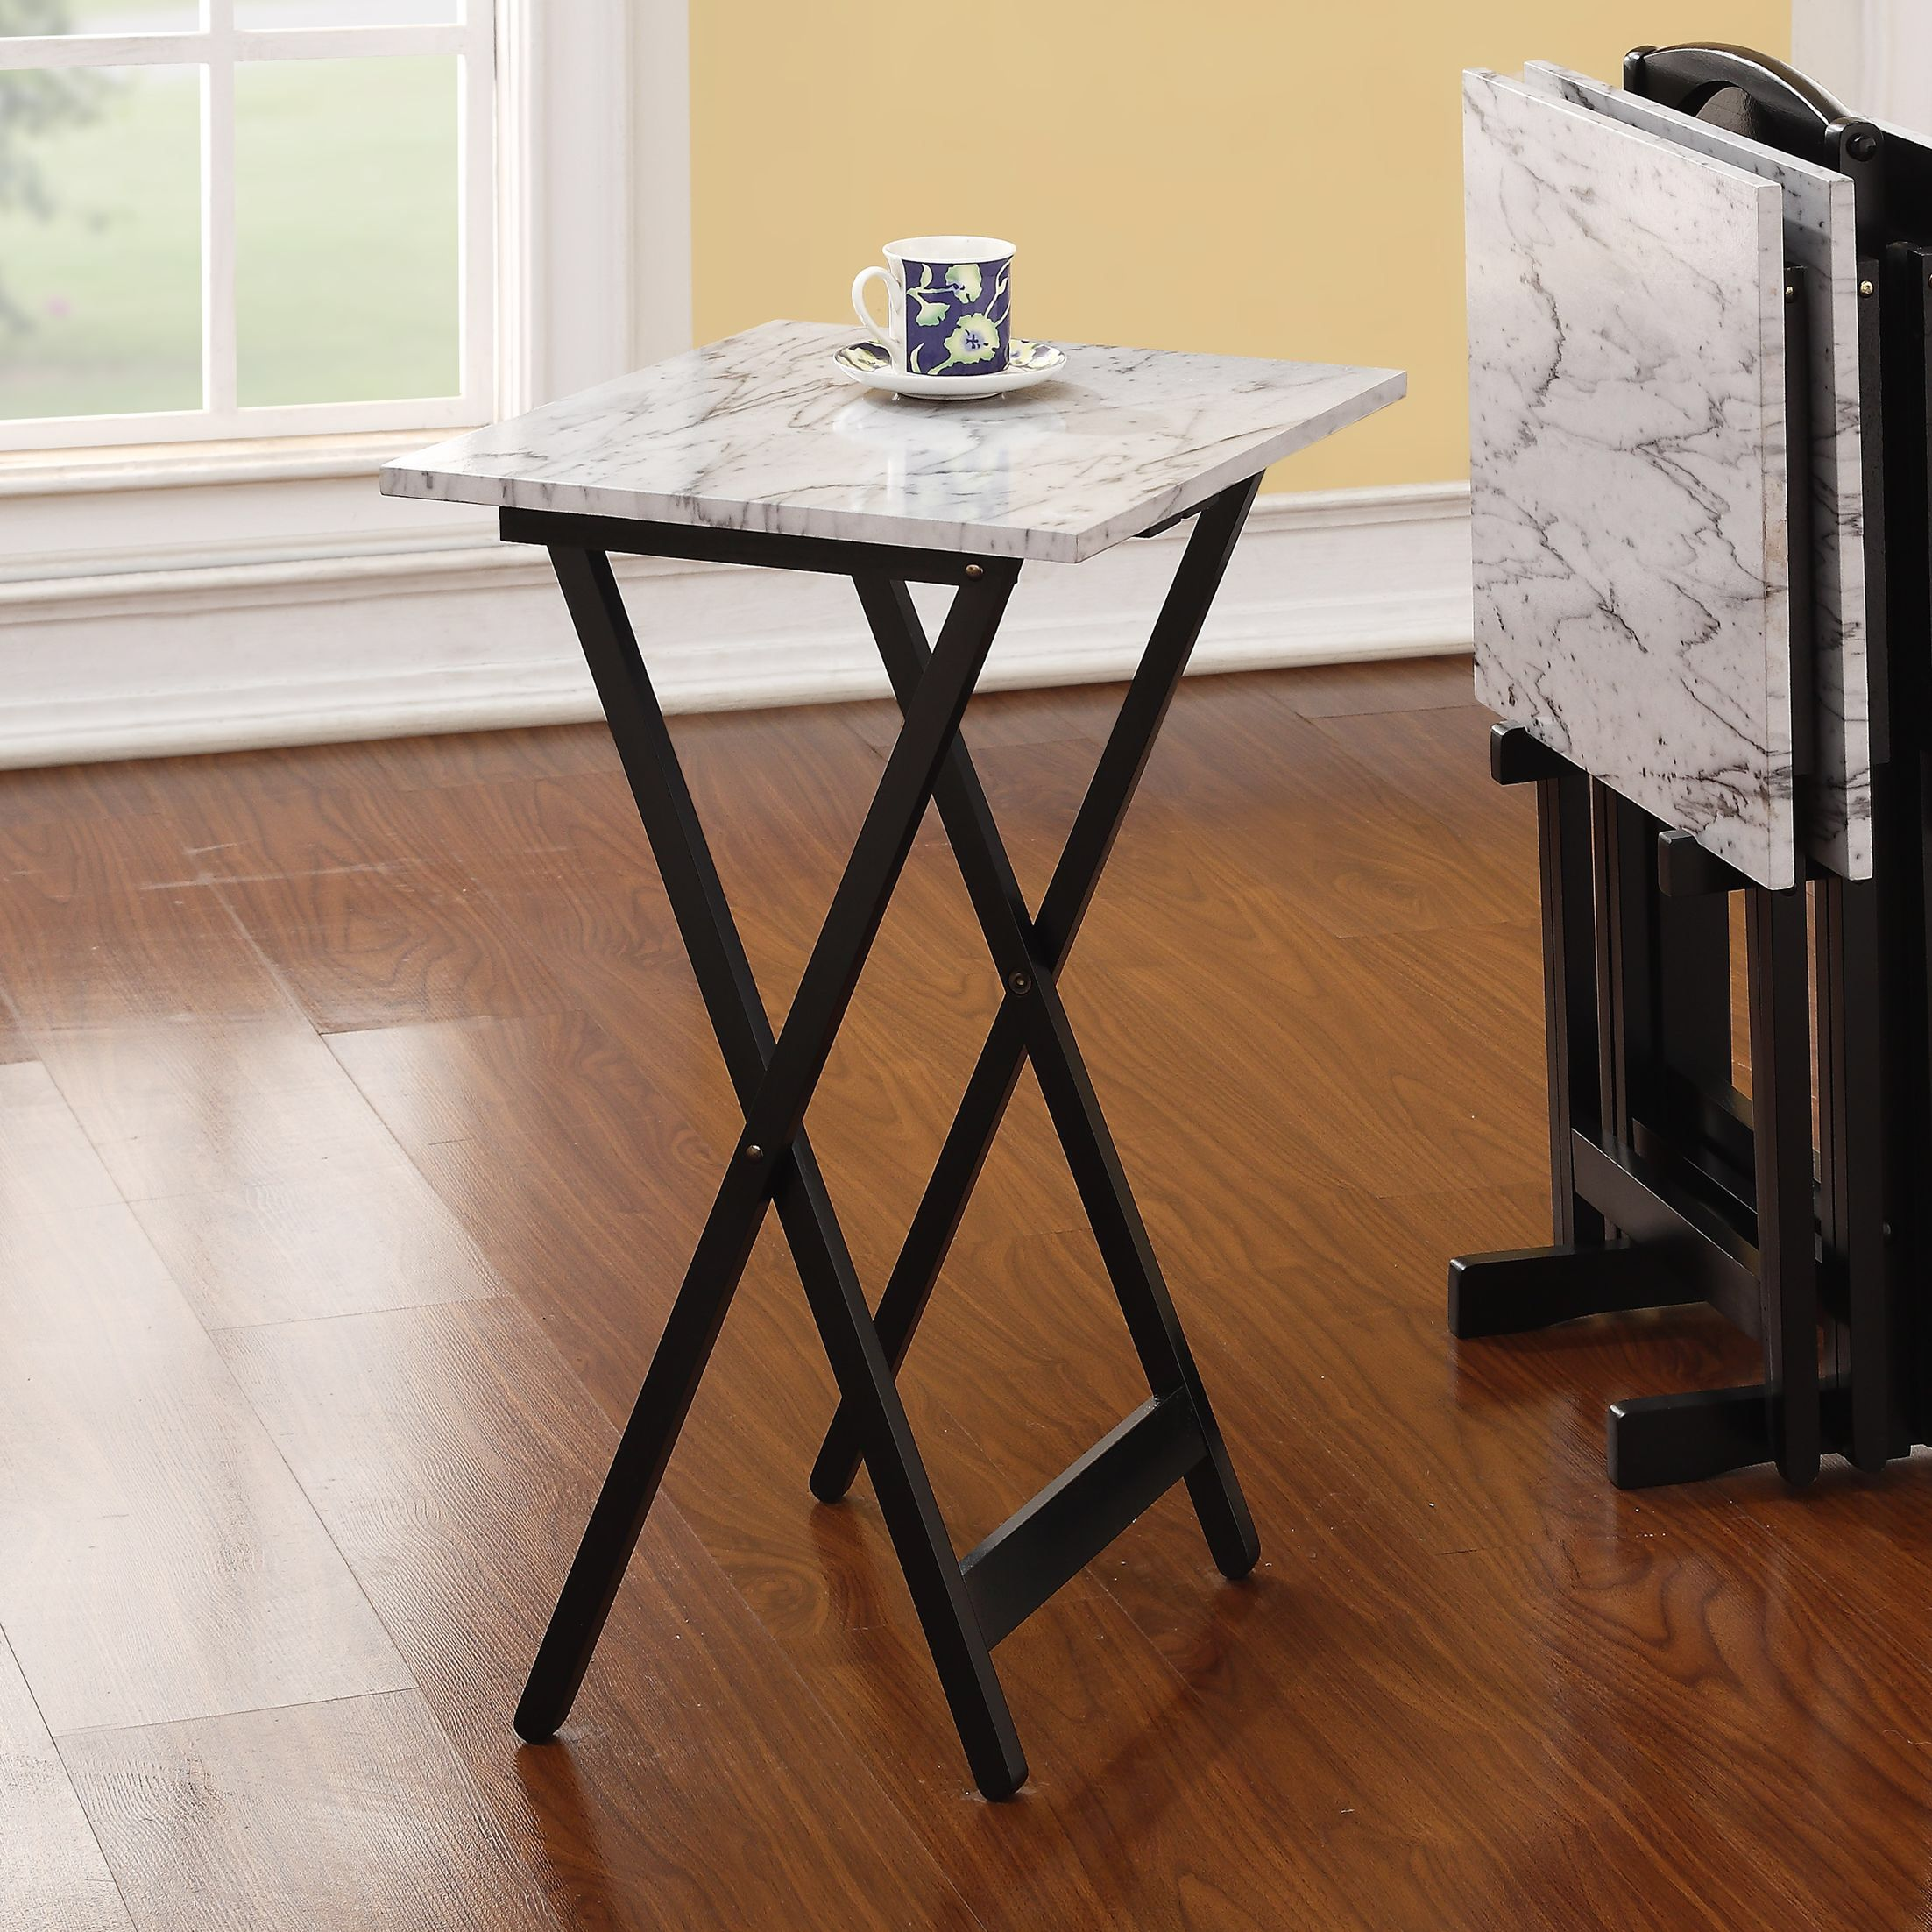 Black Finished Base And Stand Easy To Move From One Room Another With The Handle On Top Includes Four Tray Tables